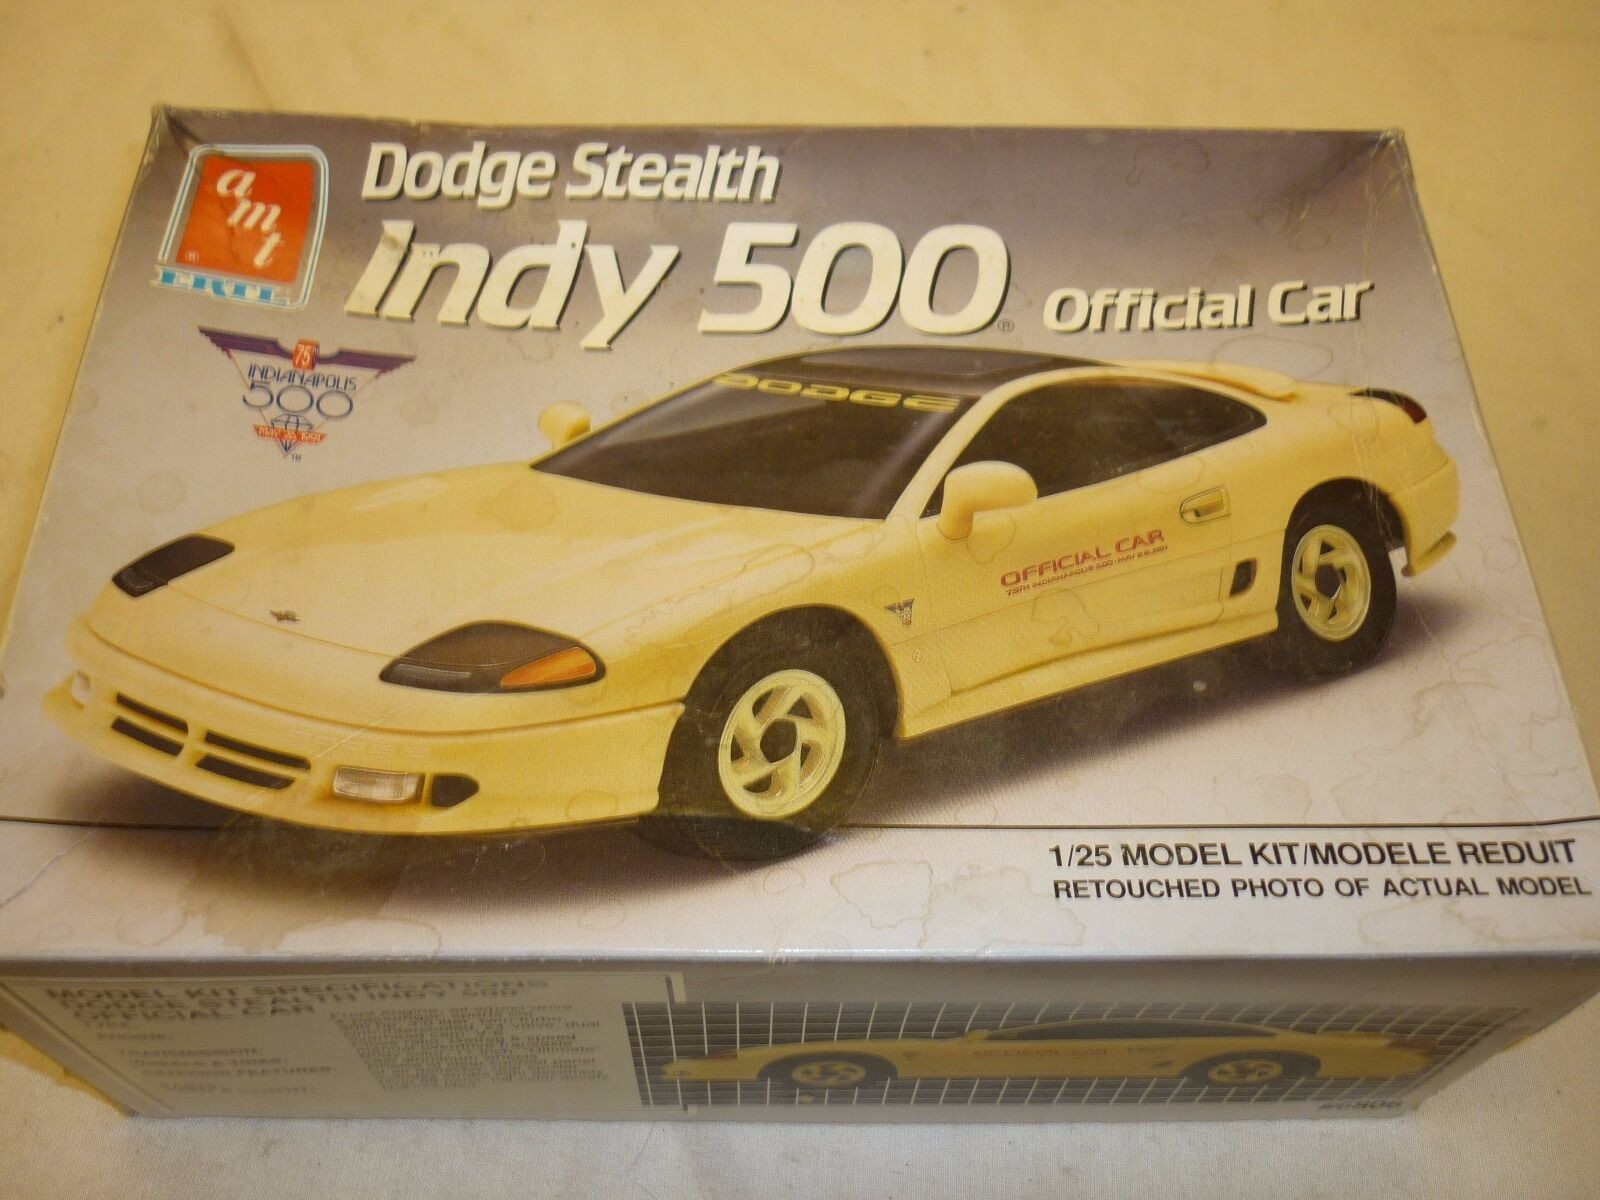 Amt un made plastic kit of a Dodge Stealth Indy 500, boxed